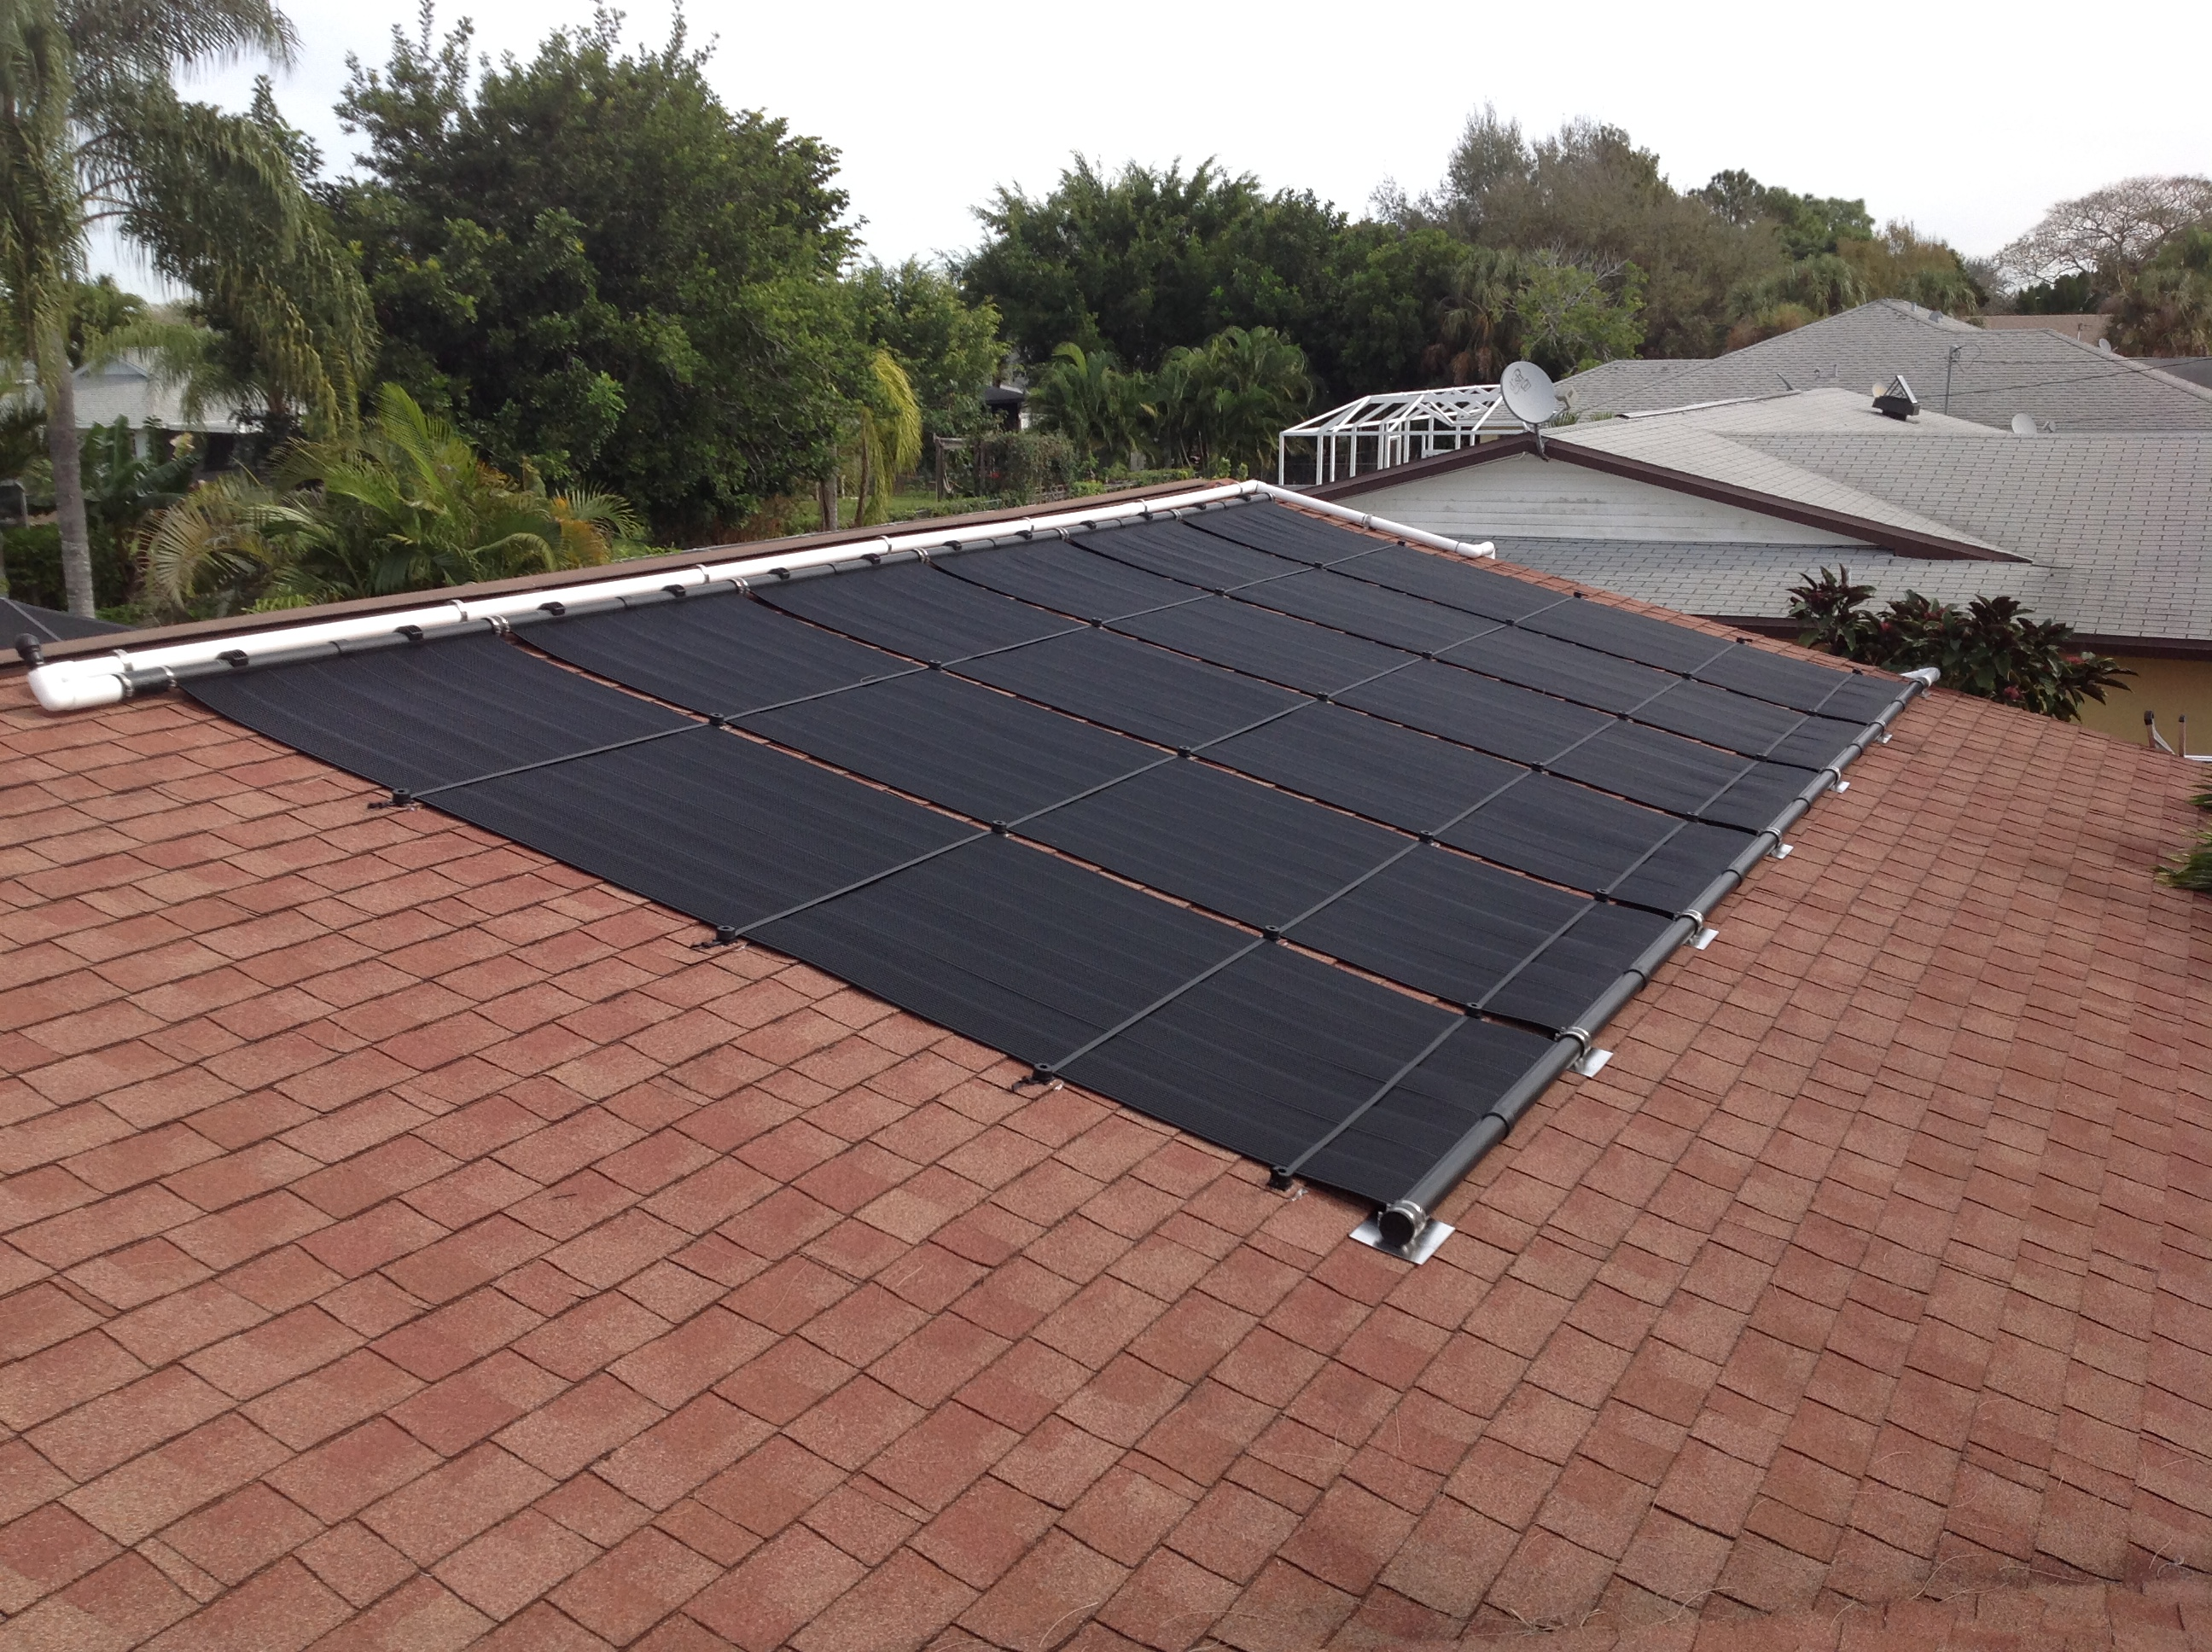 Cape coral solar pool heater for Swimming pool heating system design